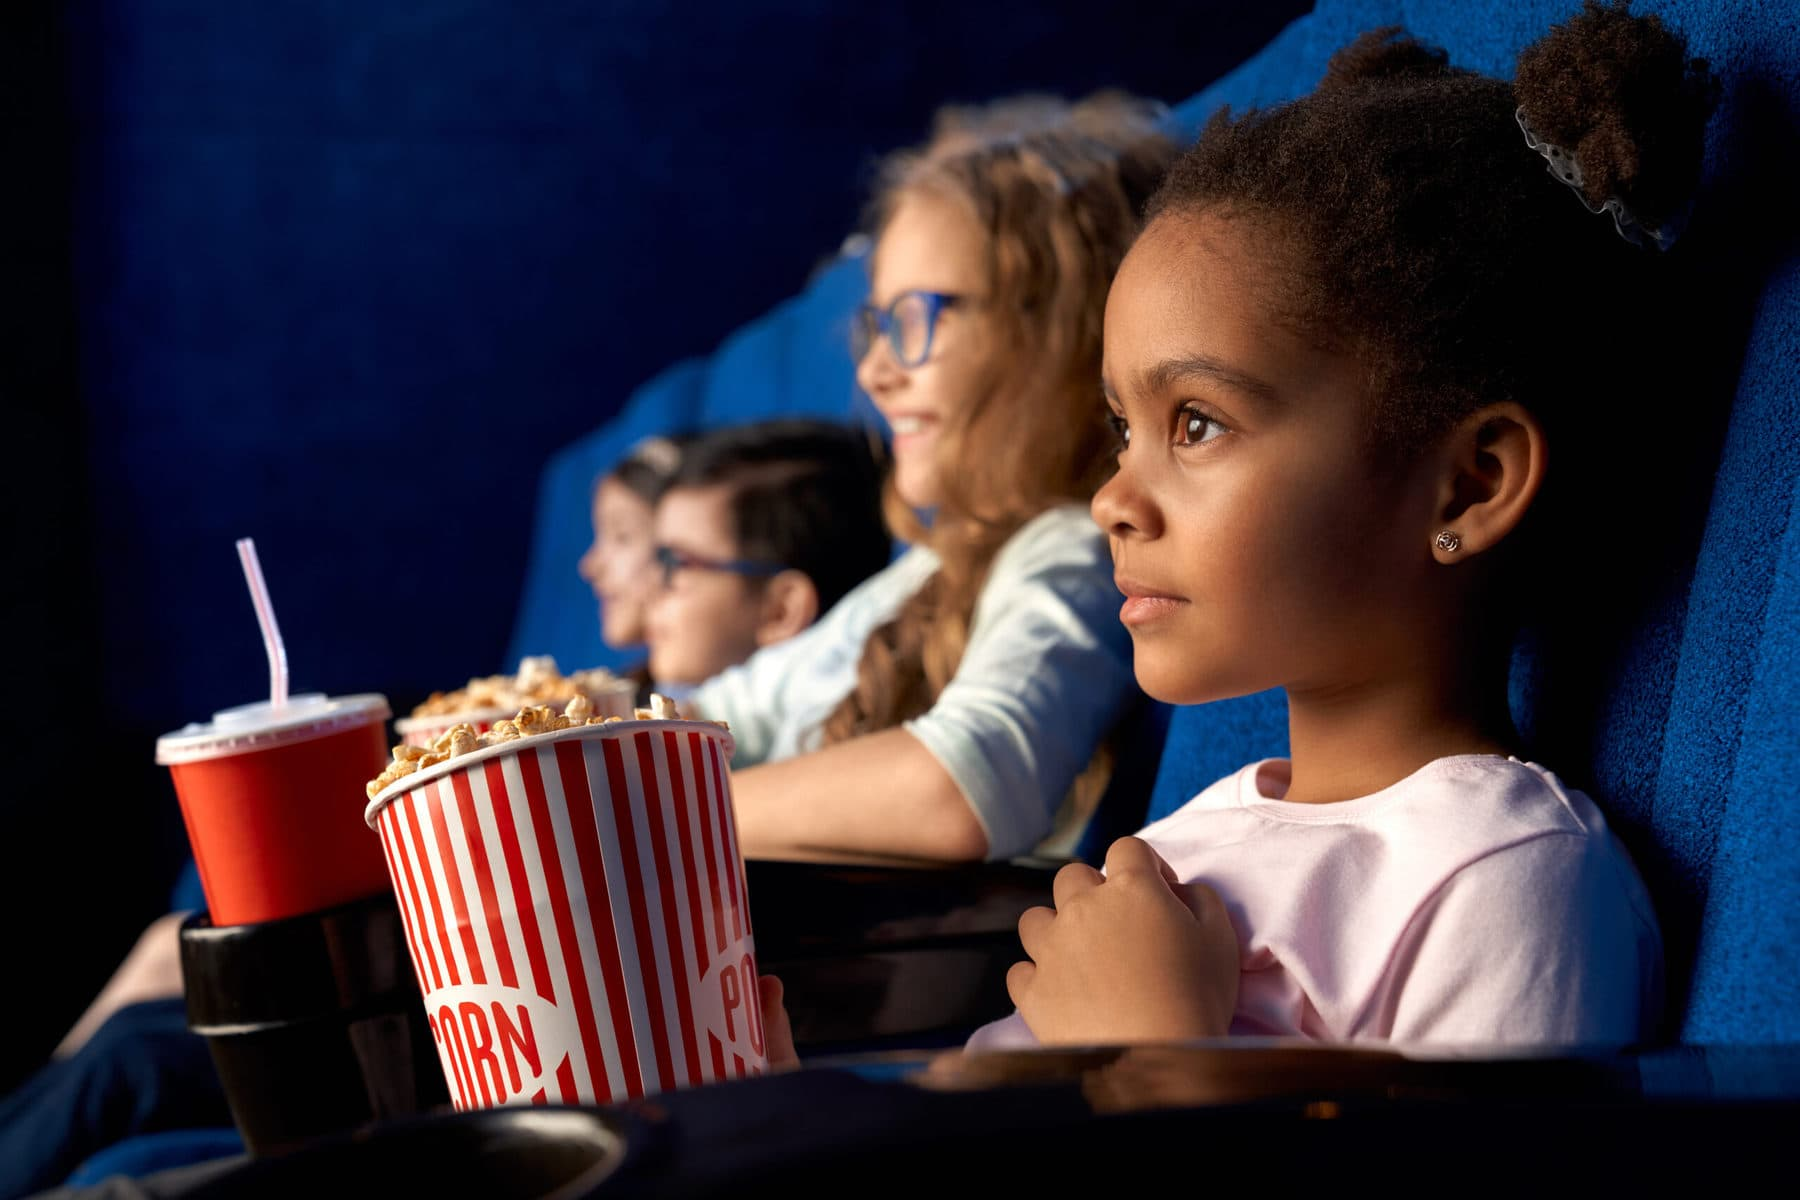 Young children sitting in movie theatre holding popcorn.